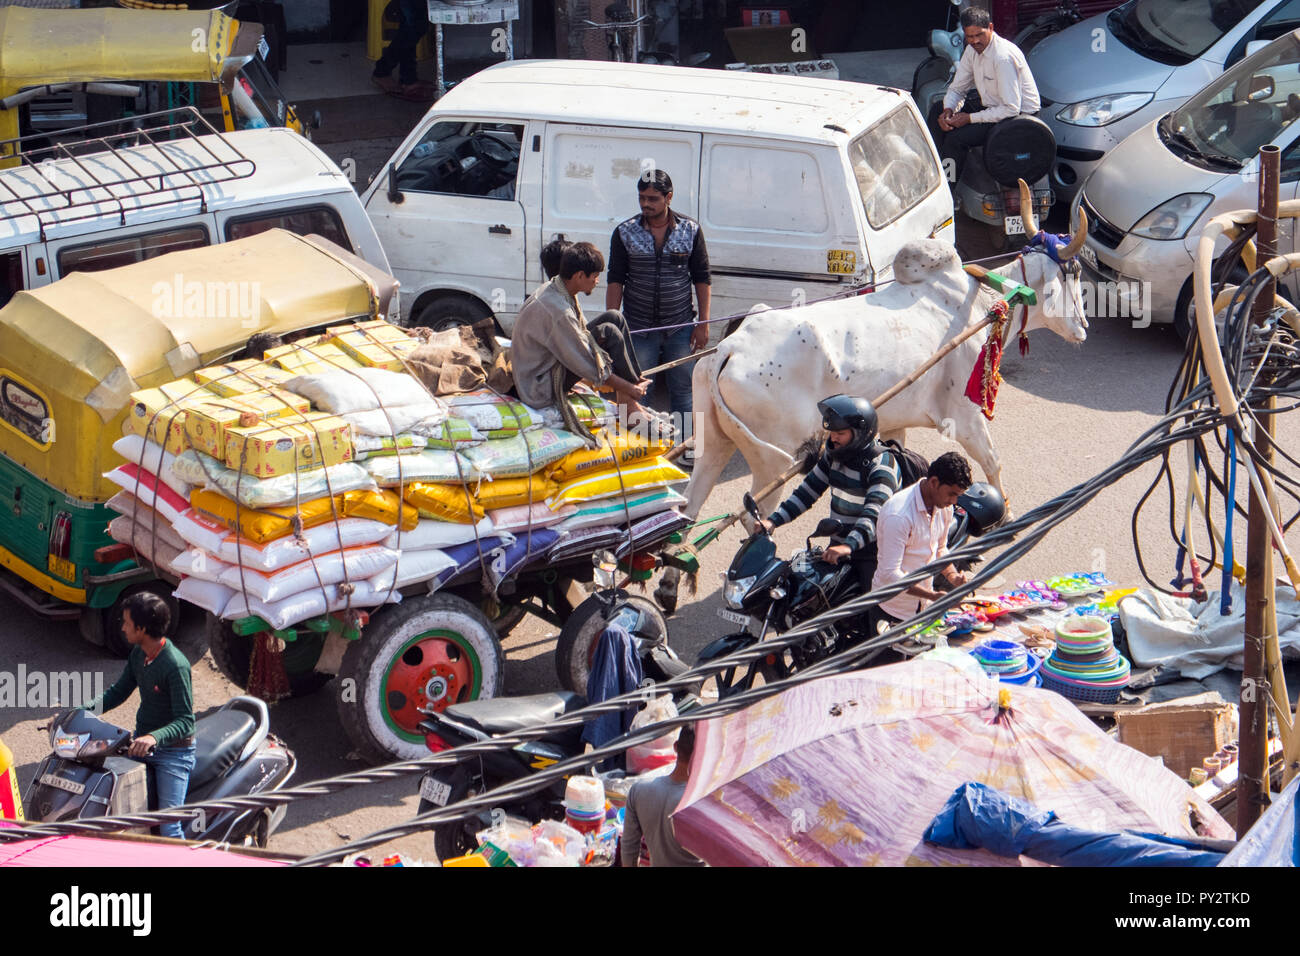 Bullock cart in typically busy Delhi street, India - Stock Image